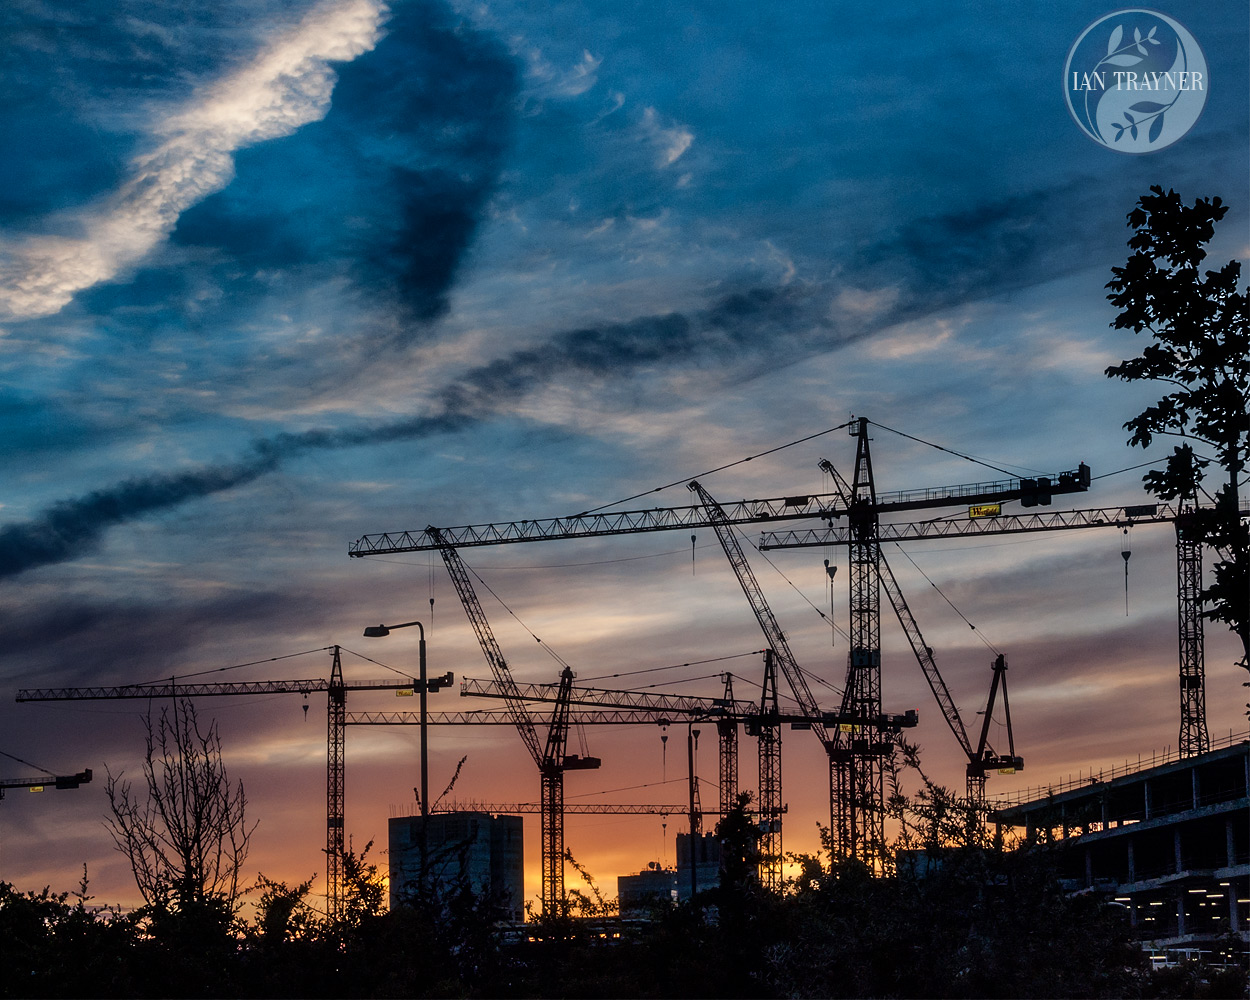 Westfield London shopping centre under construction in 2007. Sunset and cranes. Photo by Ian Trayner.